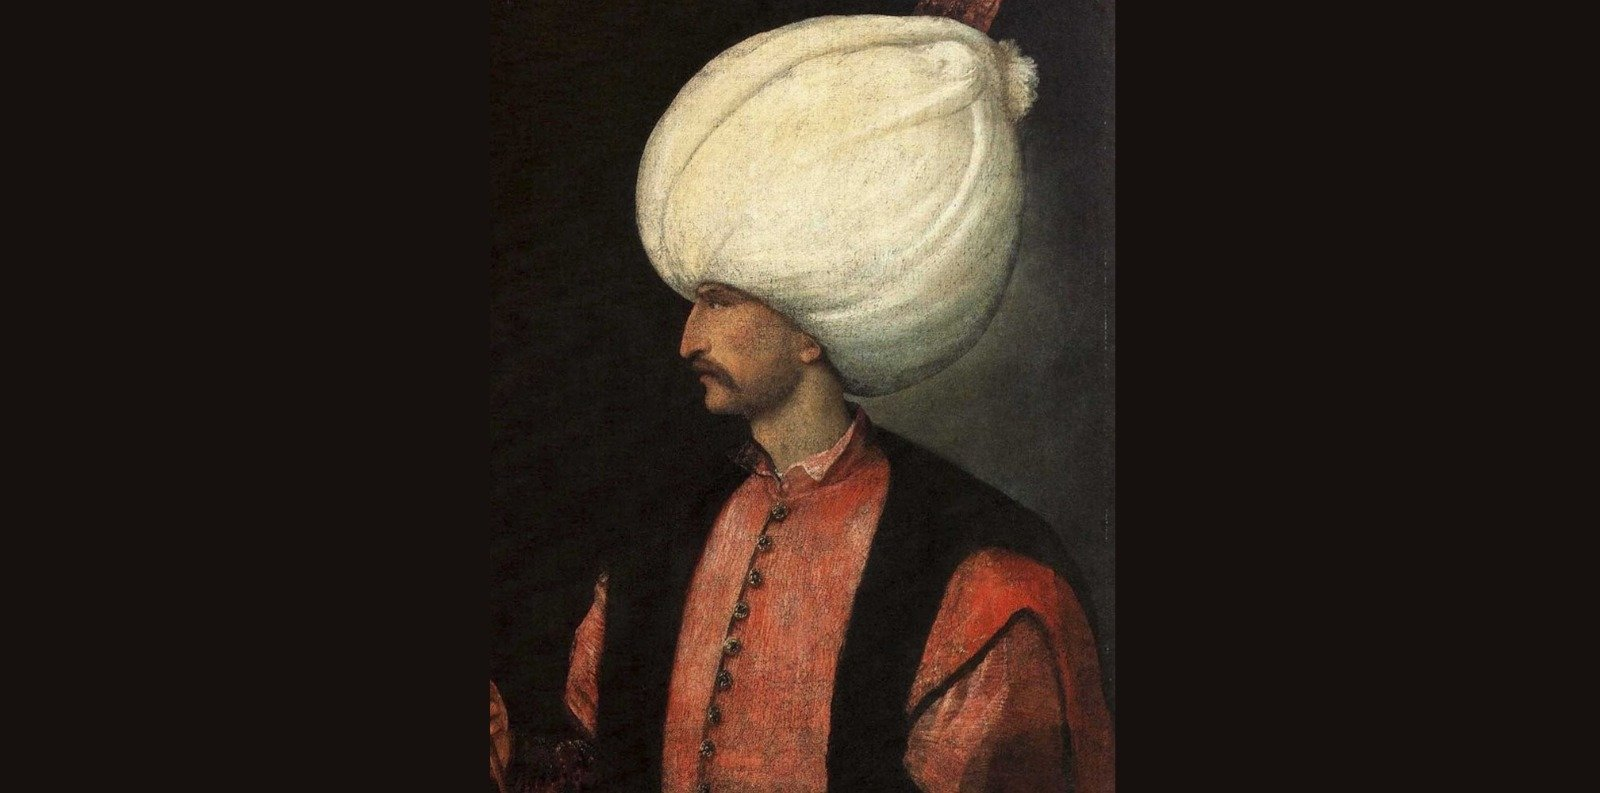 A portrait of Ottoman Sultan Suleiman I attributed to the Italian painter Titian.